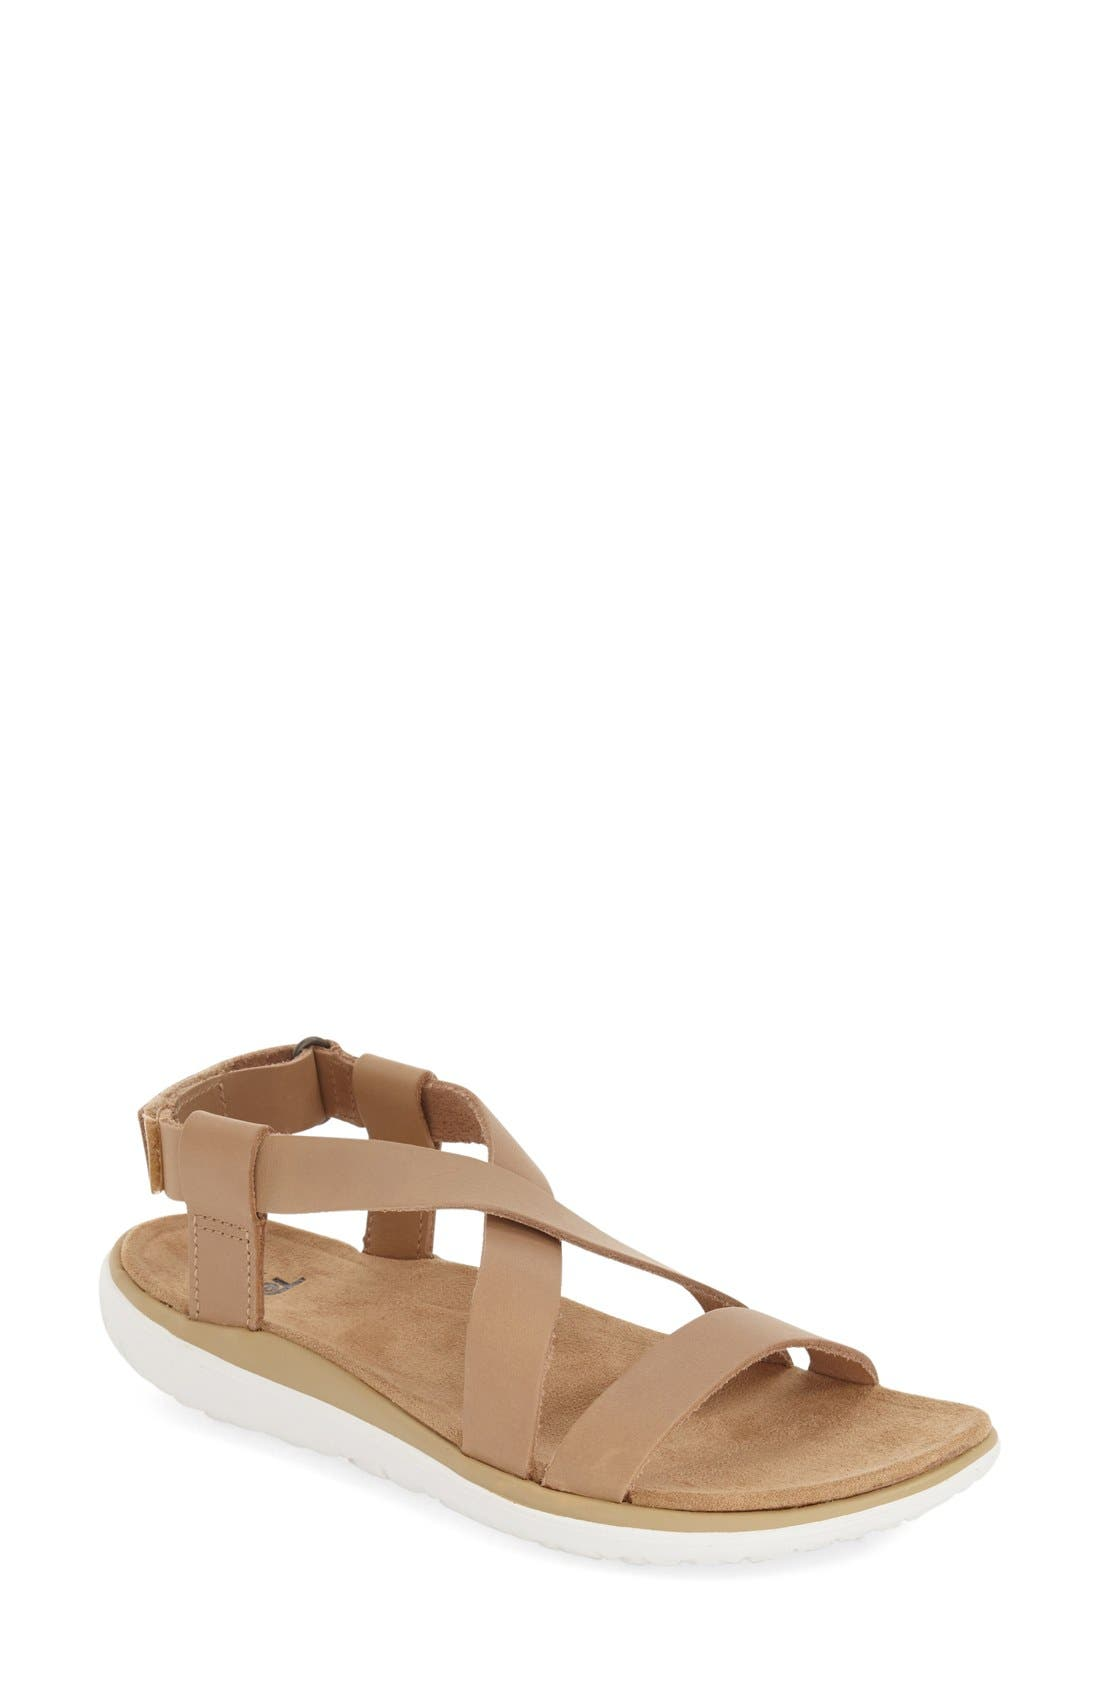 'Terra Float Livia Lux' Sandal,                         Main,                         color, 250